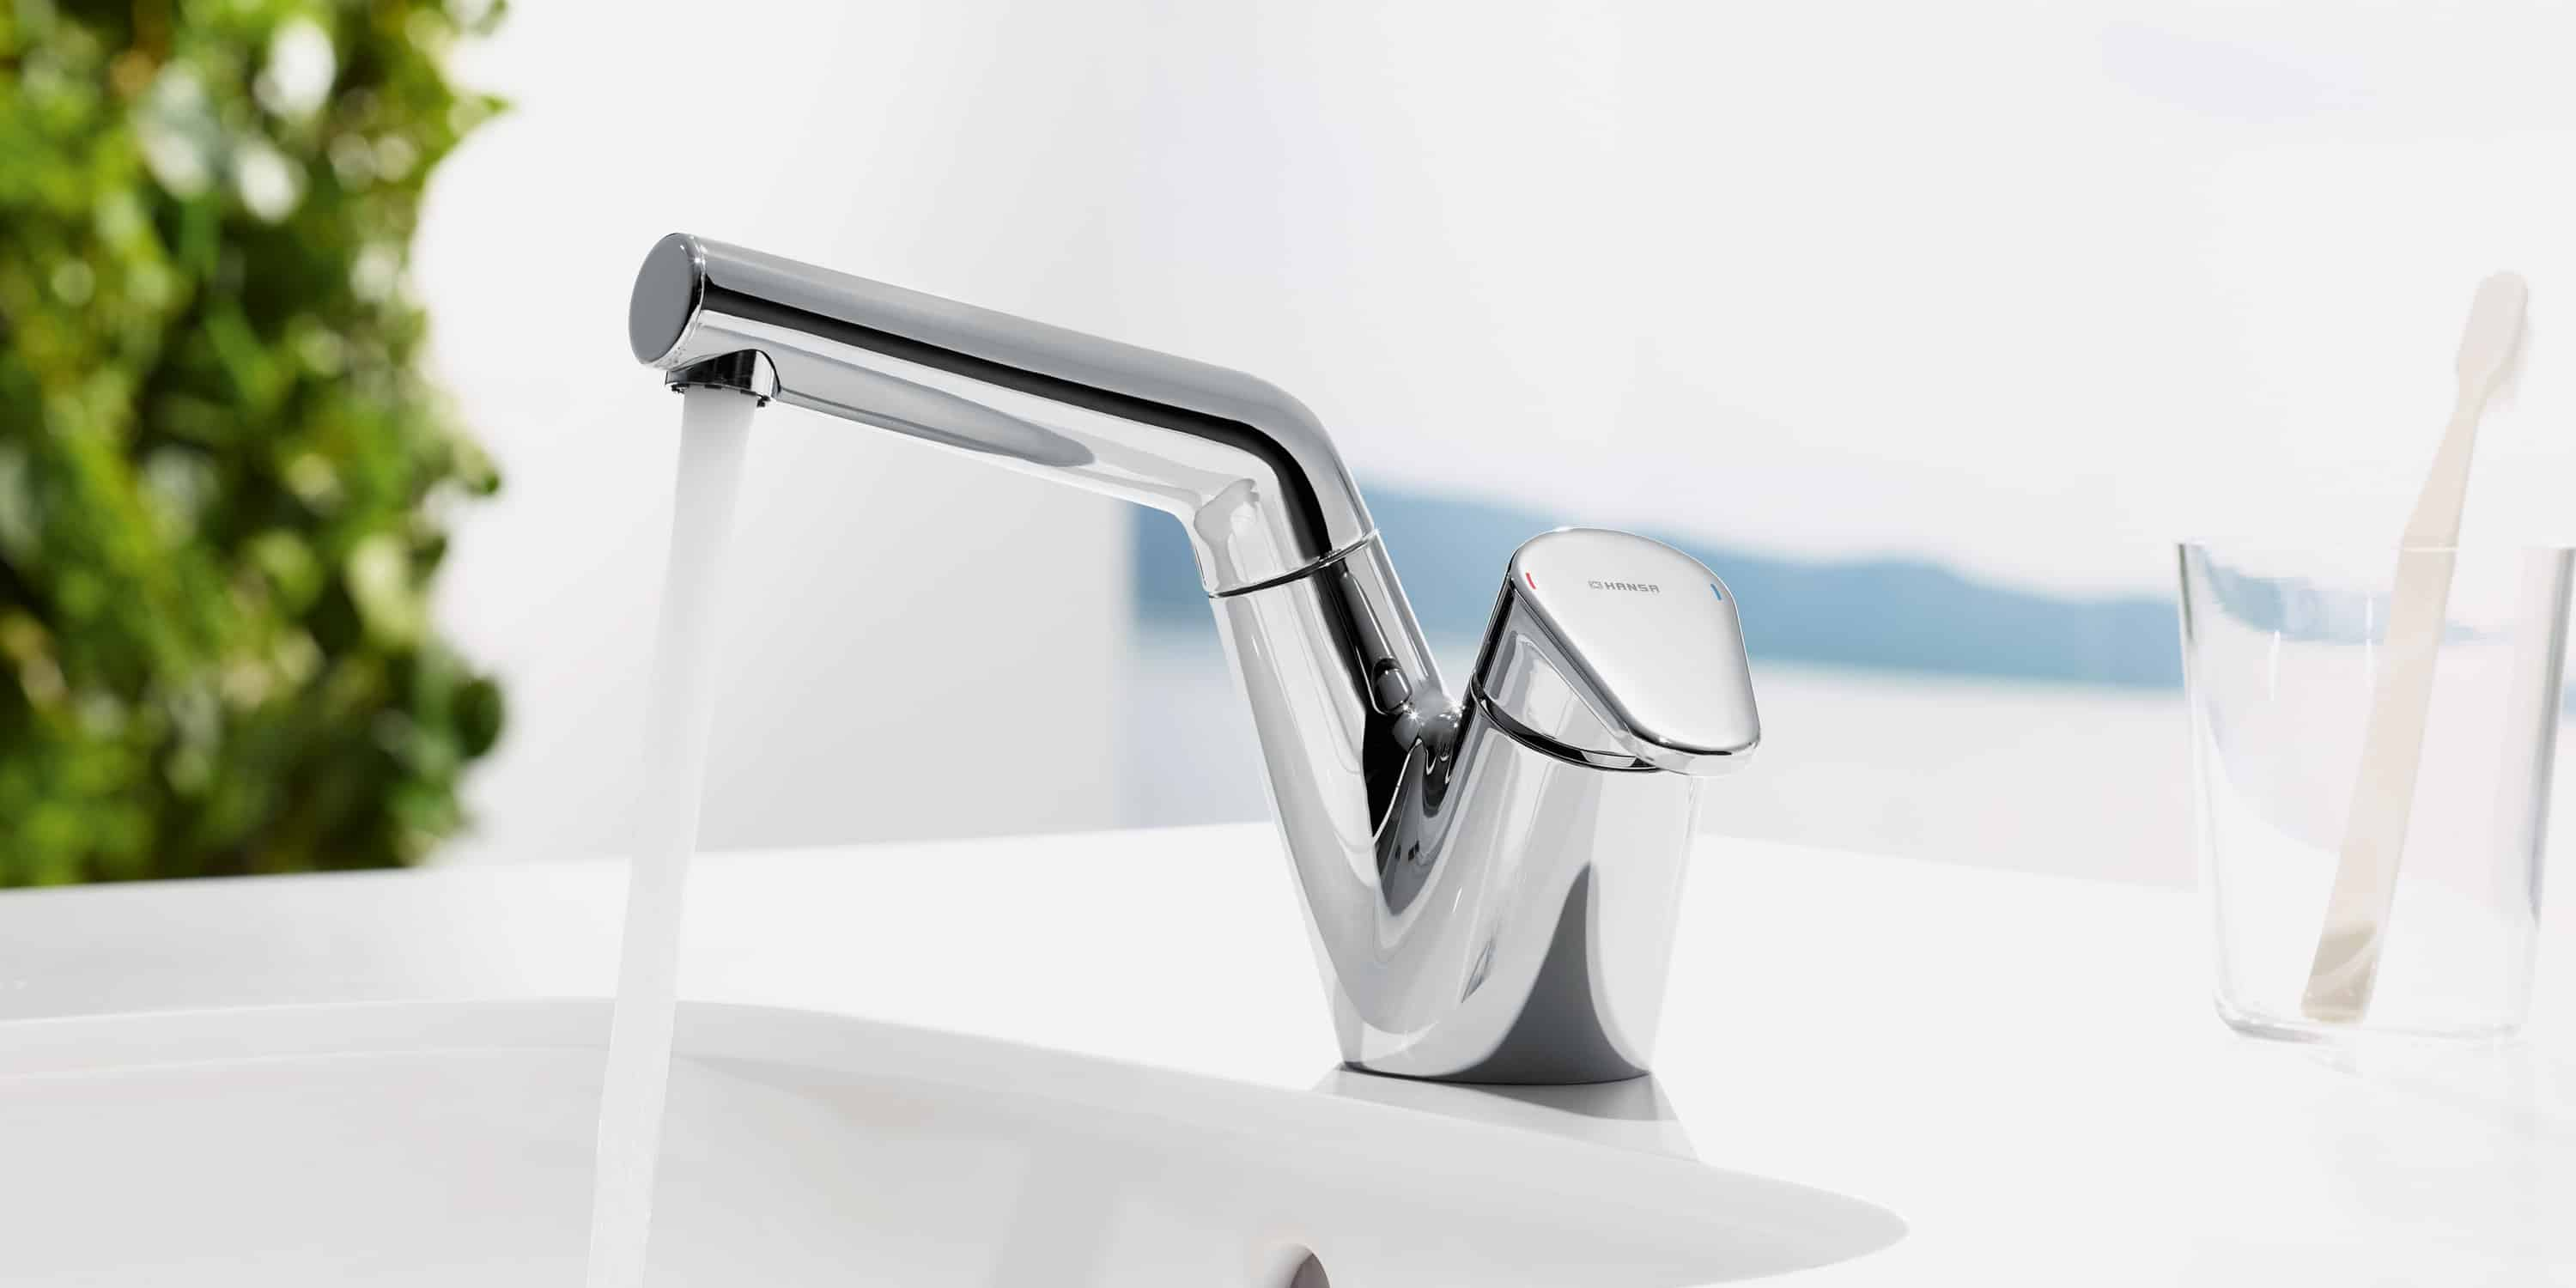 meet the us style at home elegant cliff projects faucets meets hansa hansacliff for sophisticated in classic ish faucet frankfurt